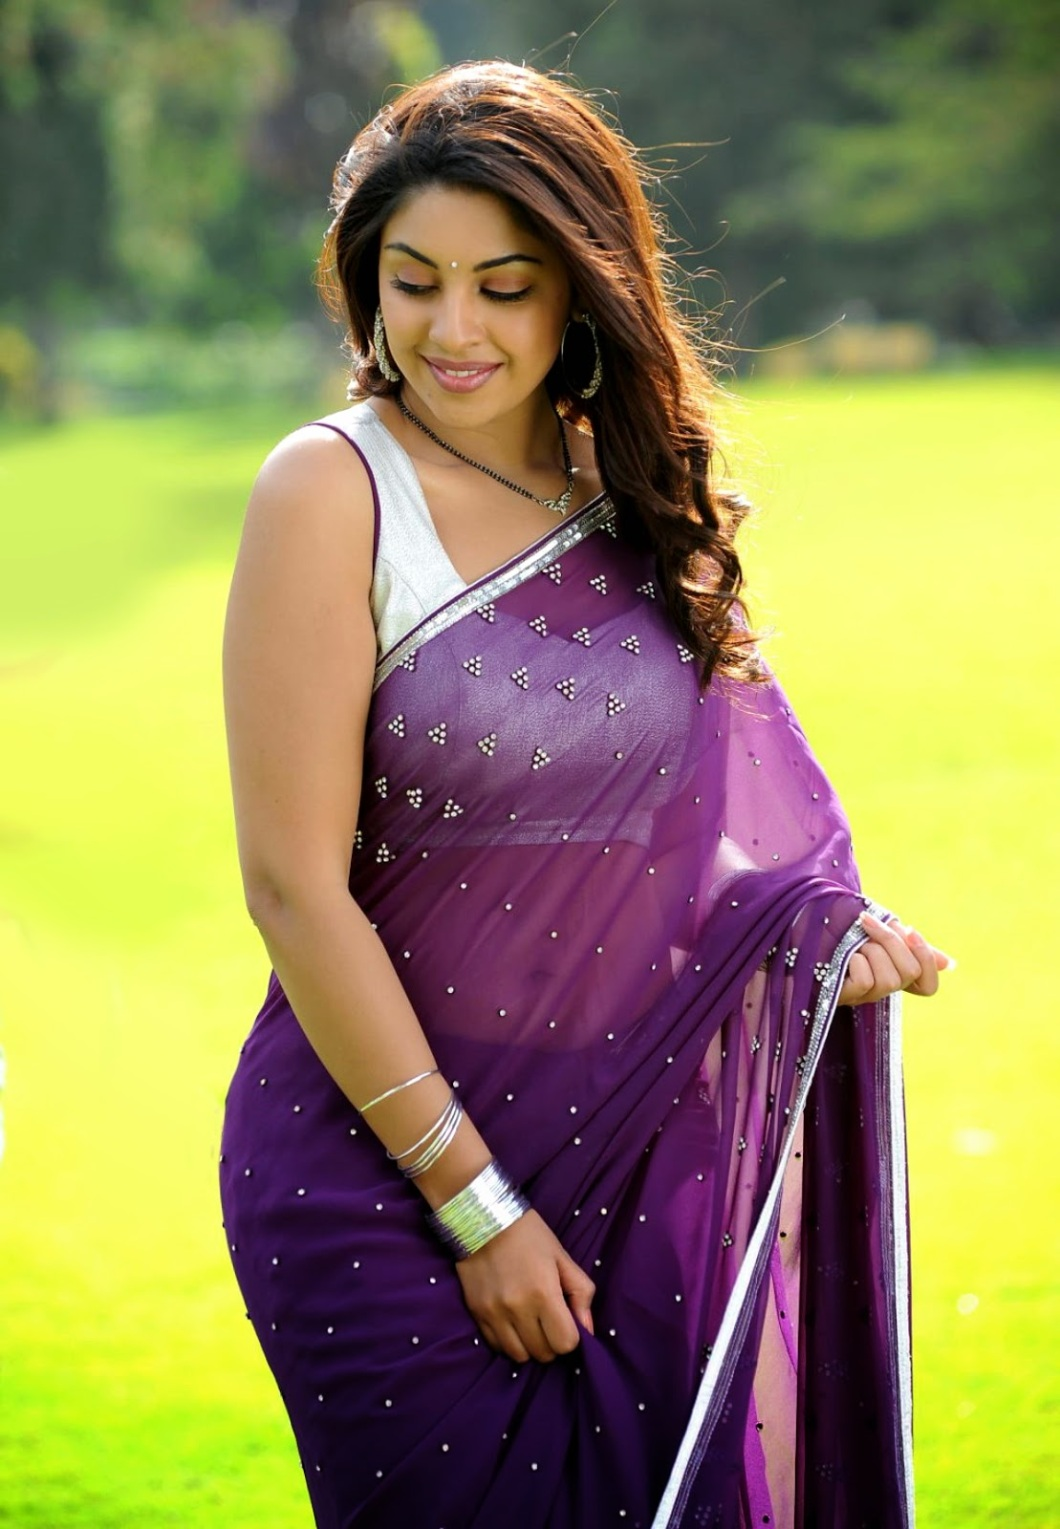 hot image of south indian actress in saree | imagewallpapers.co